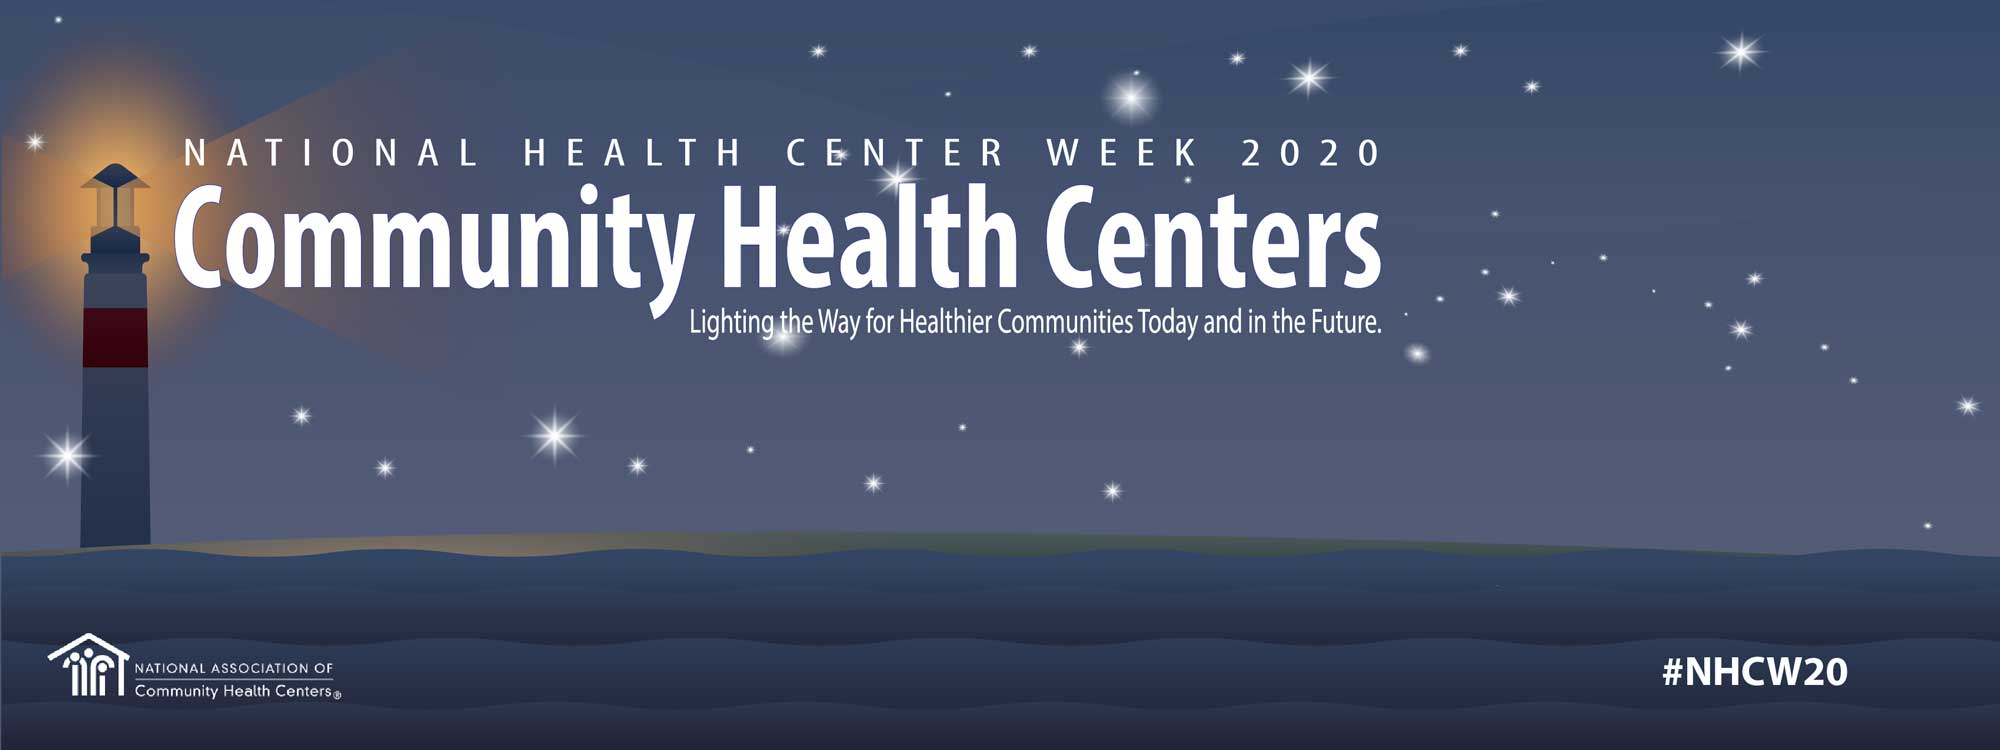 National Health Center week header